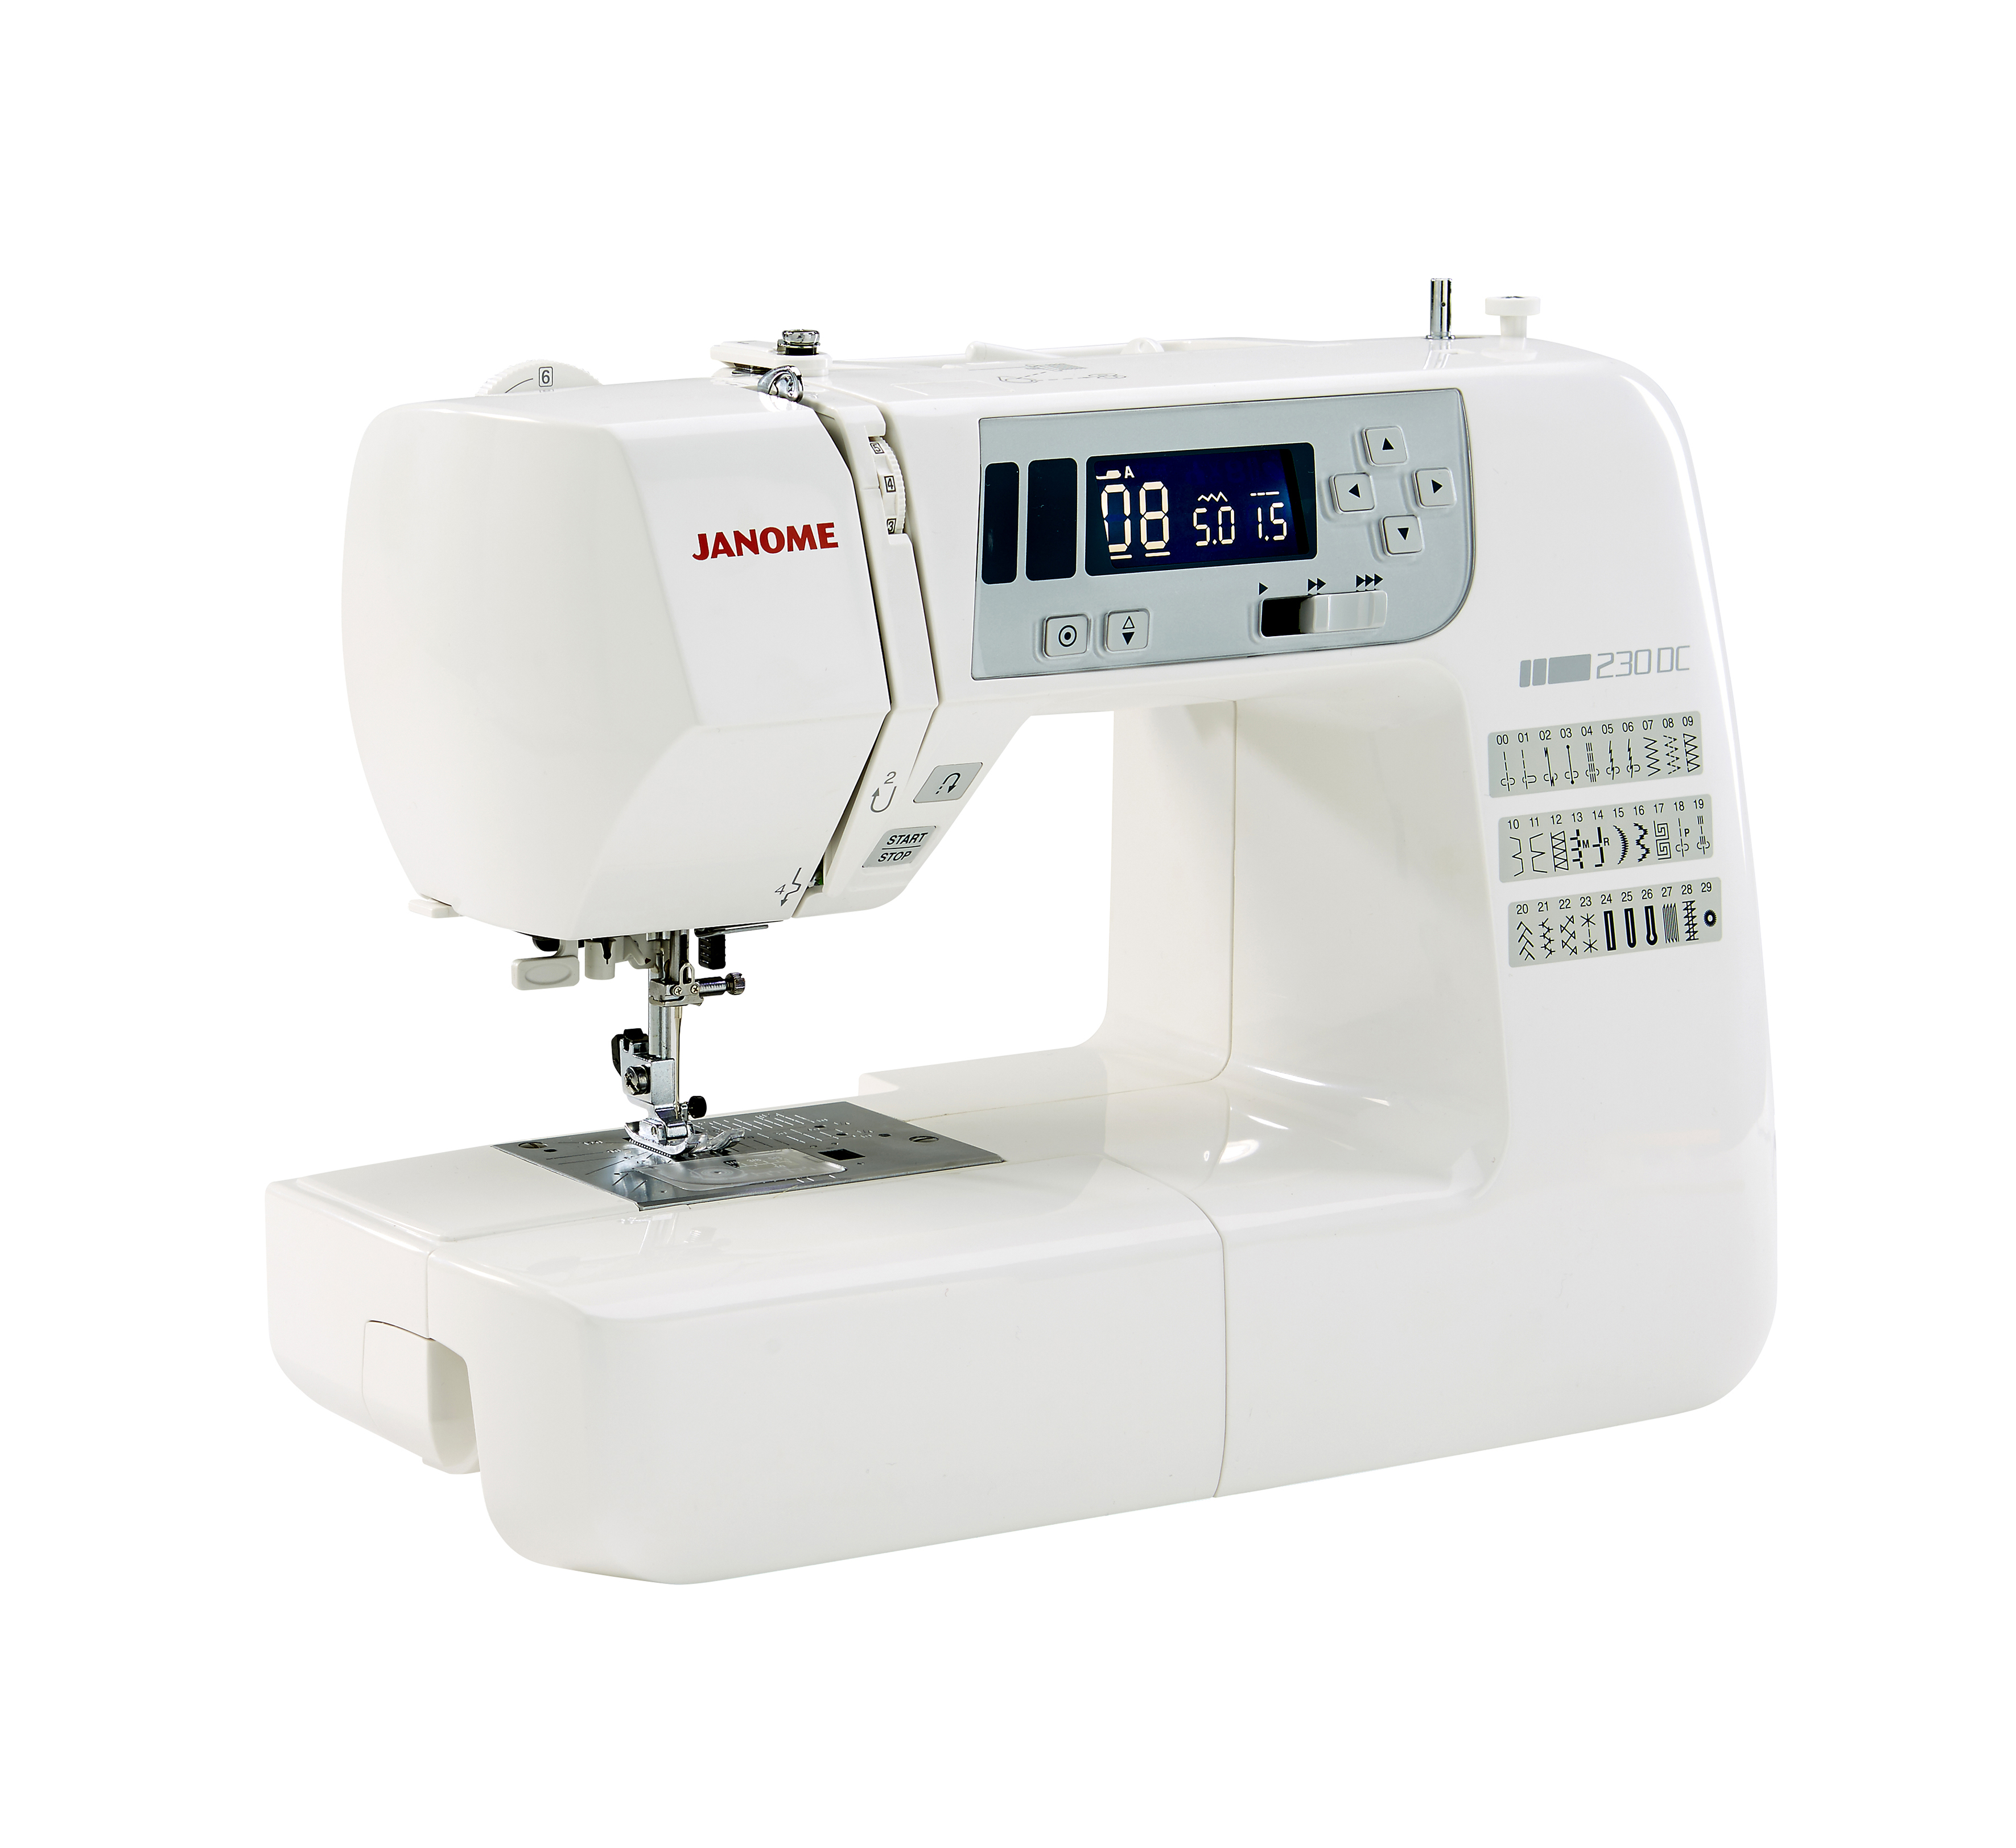 Janome 230DC - Franklins Group